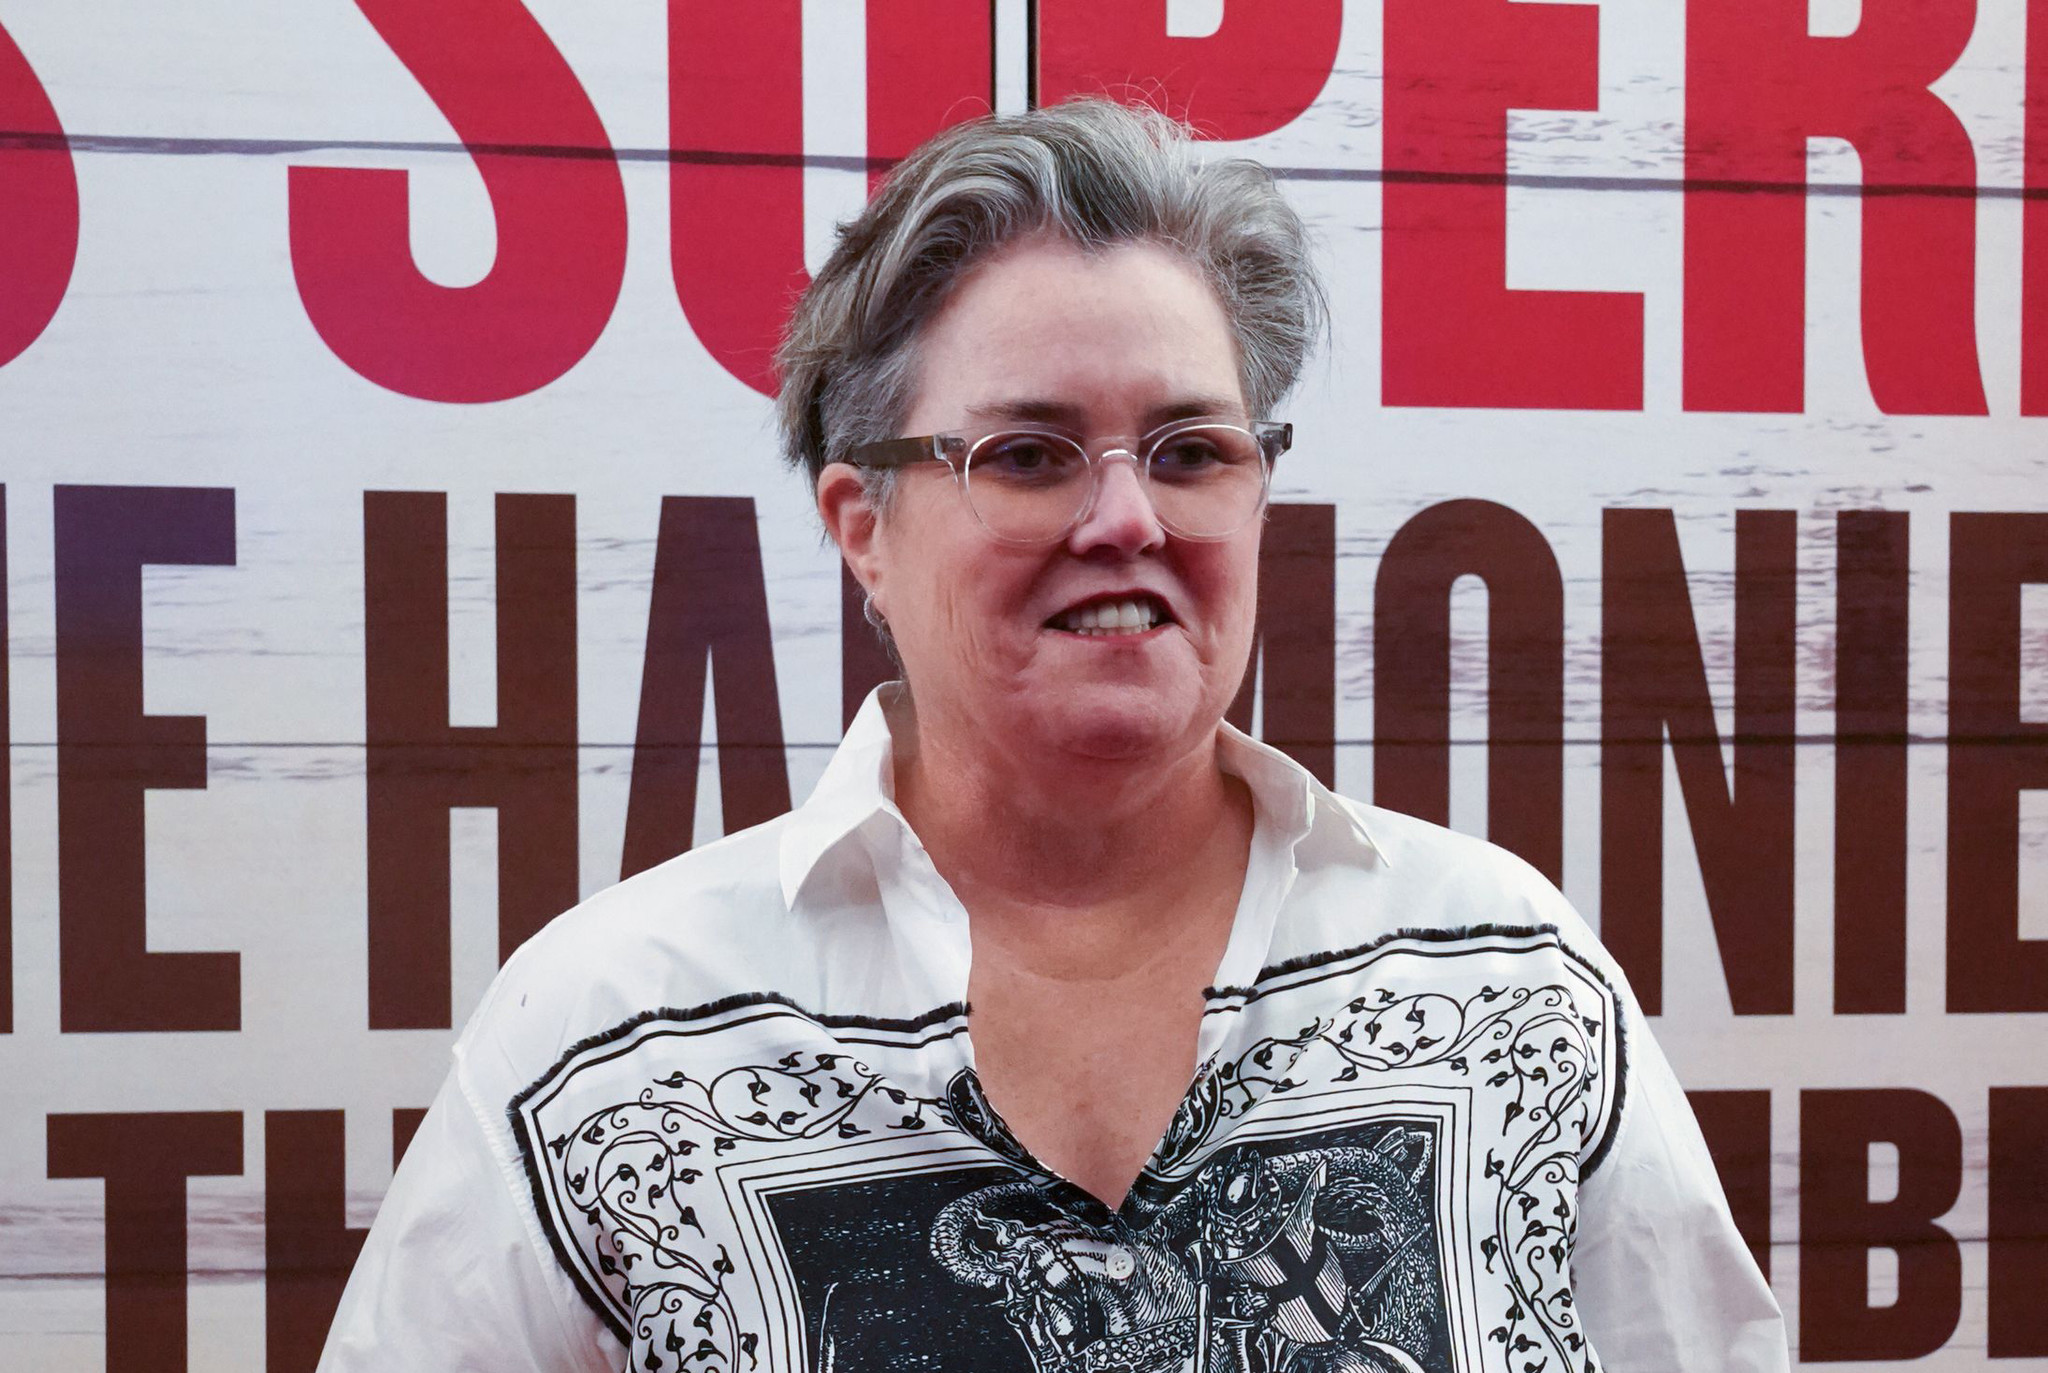 The show must go online: Rosie O'Donnell & Co. offer fun Broadway fix amid coronavirus closure